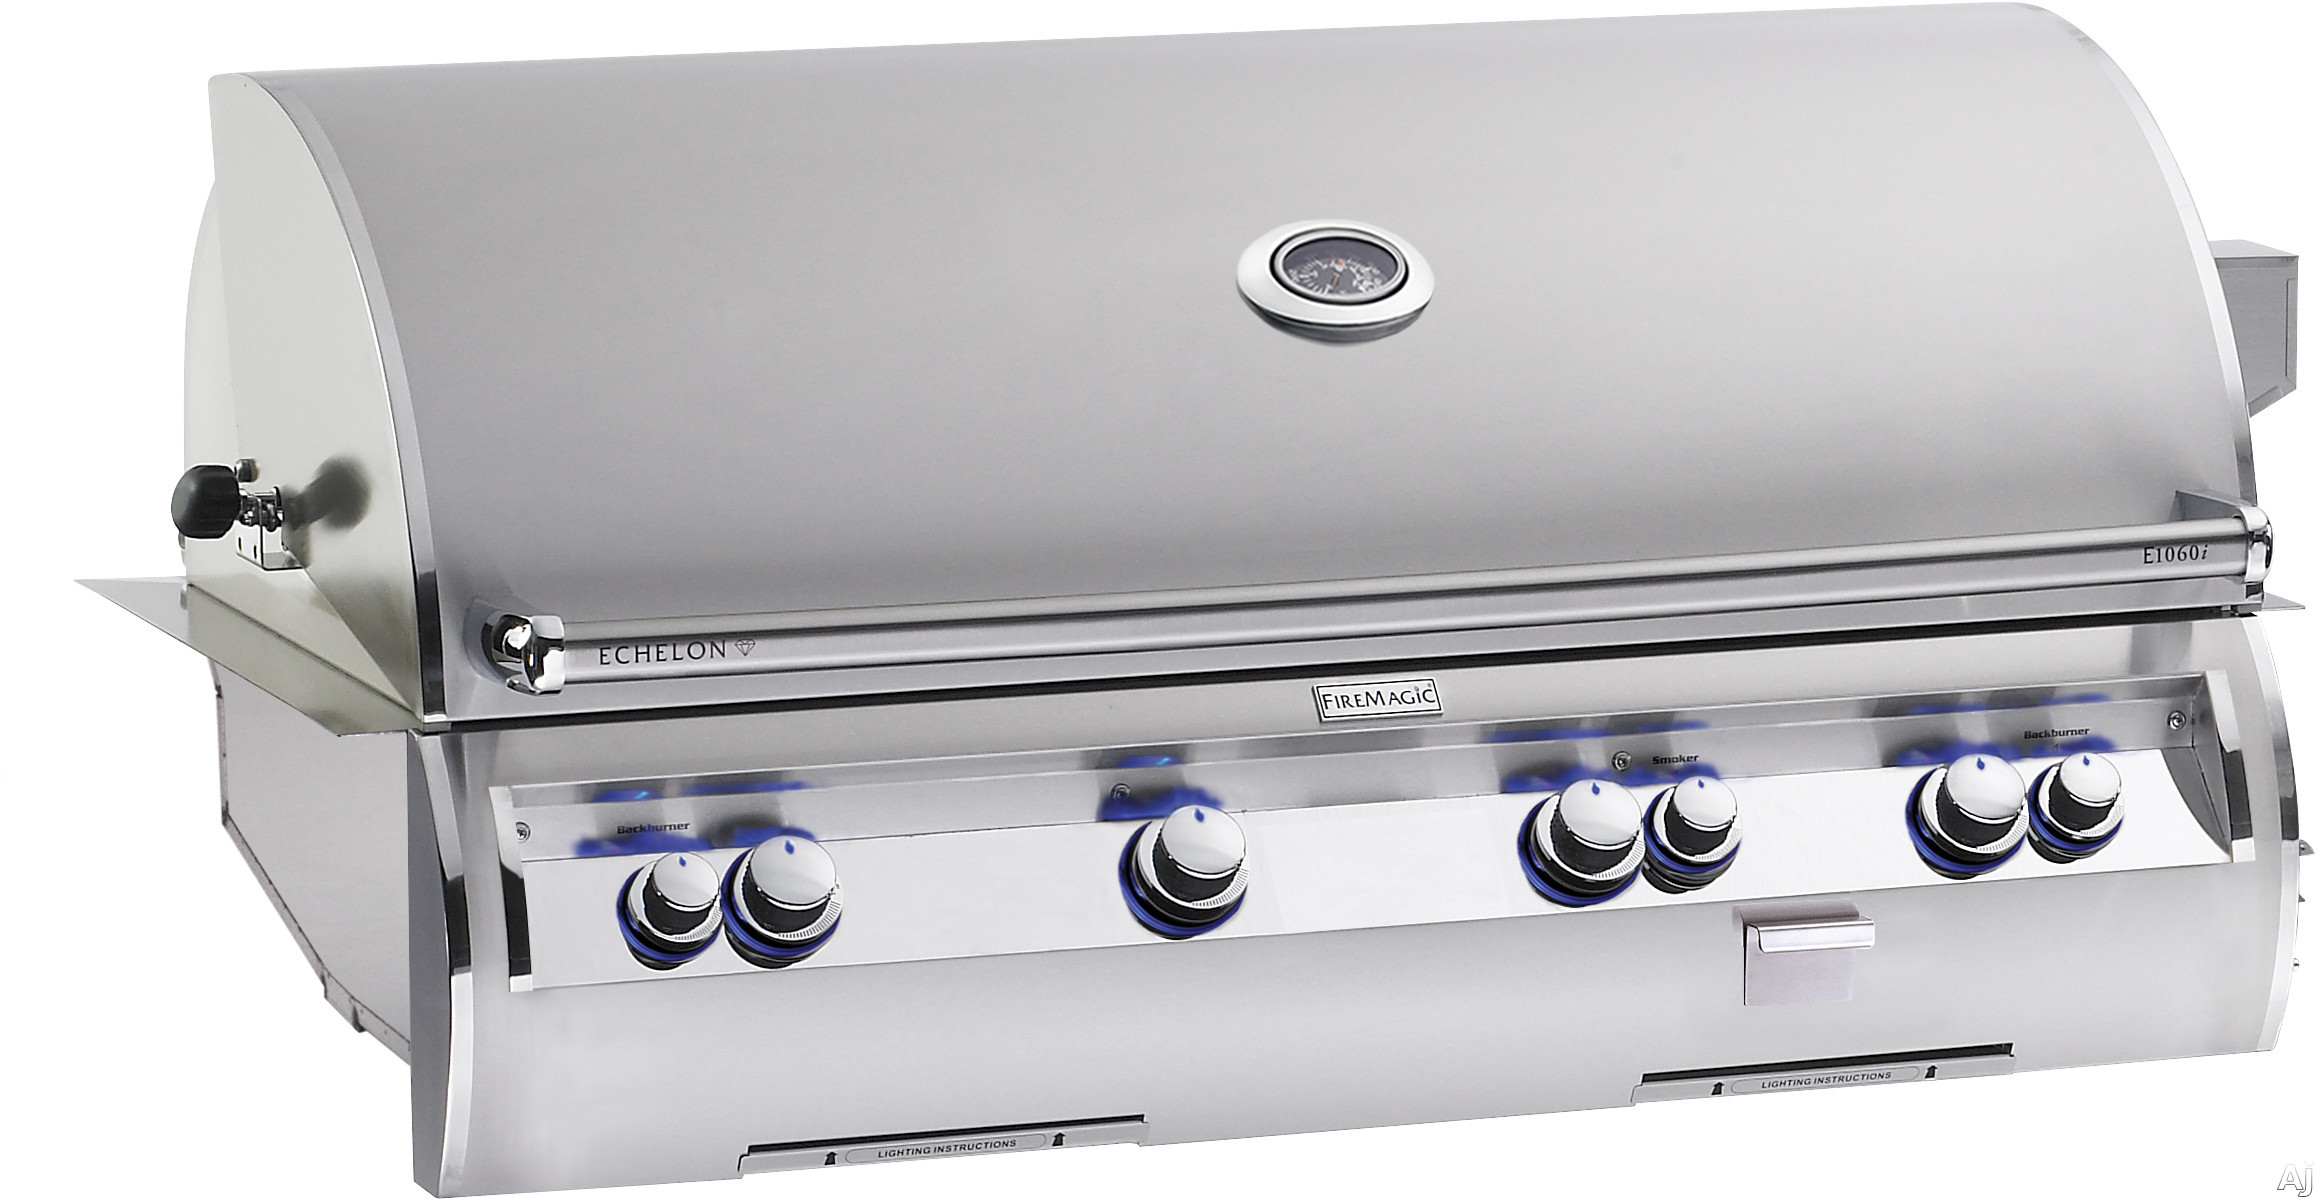 Image of Fire Magic Echelon Collection E1060I4LAN 48 Inch Built-in Gas Grill with 1,056 sq. in. Cooking Surface, 115,000 BTU Primary Burners, 22,000 BTU Back Burners and 3,000 BTU Wood Chip Smoker: Natural Gas, Left-Side Infrared Burner